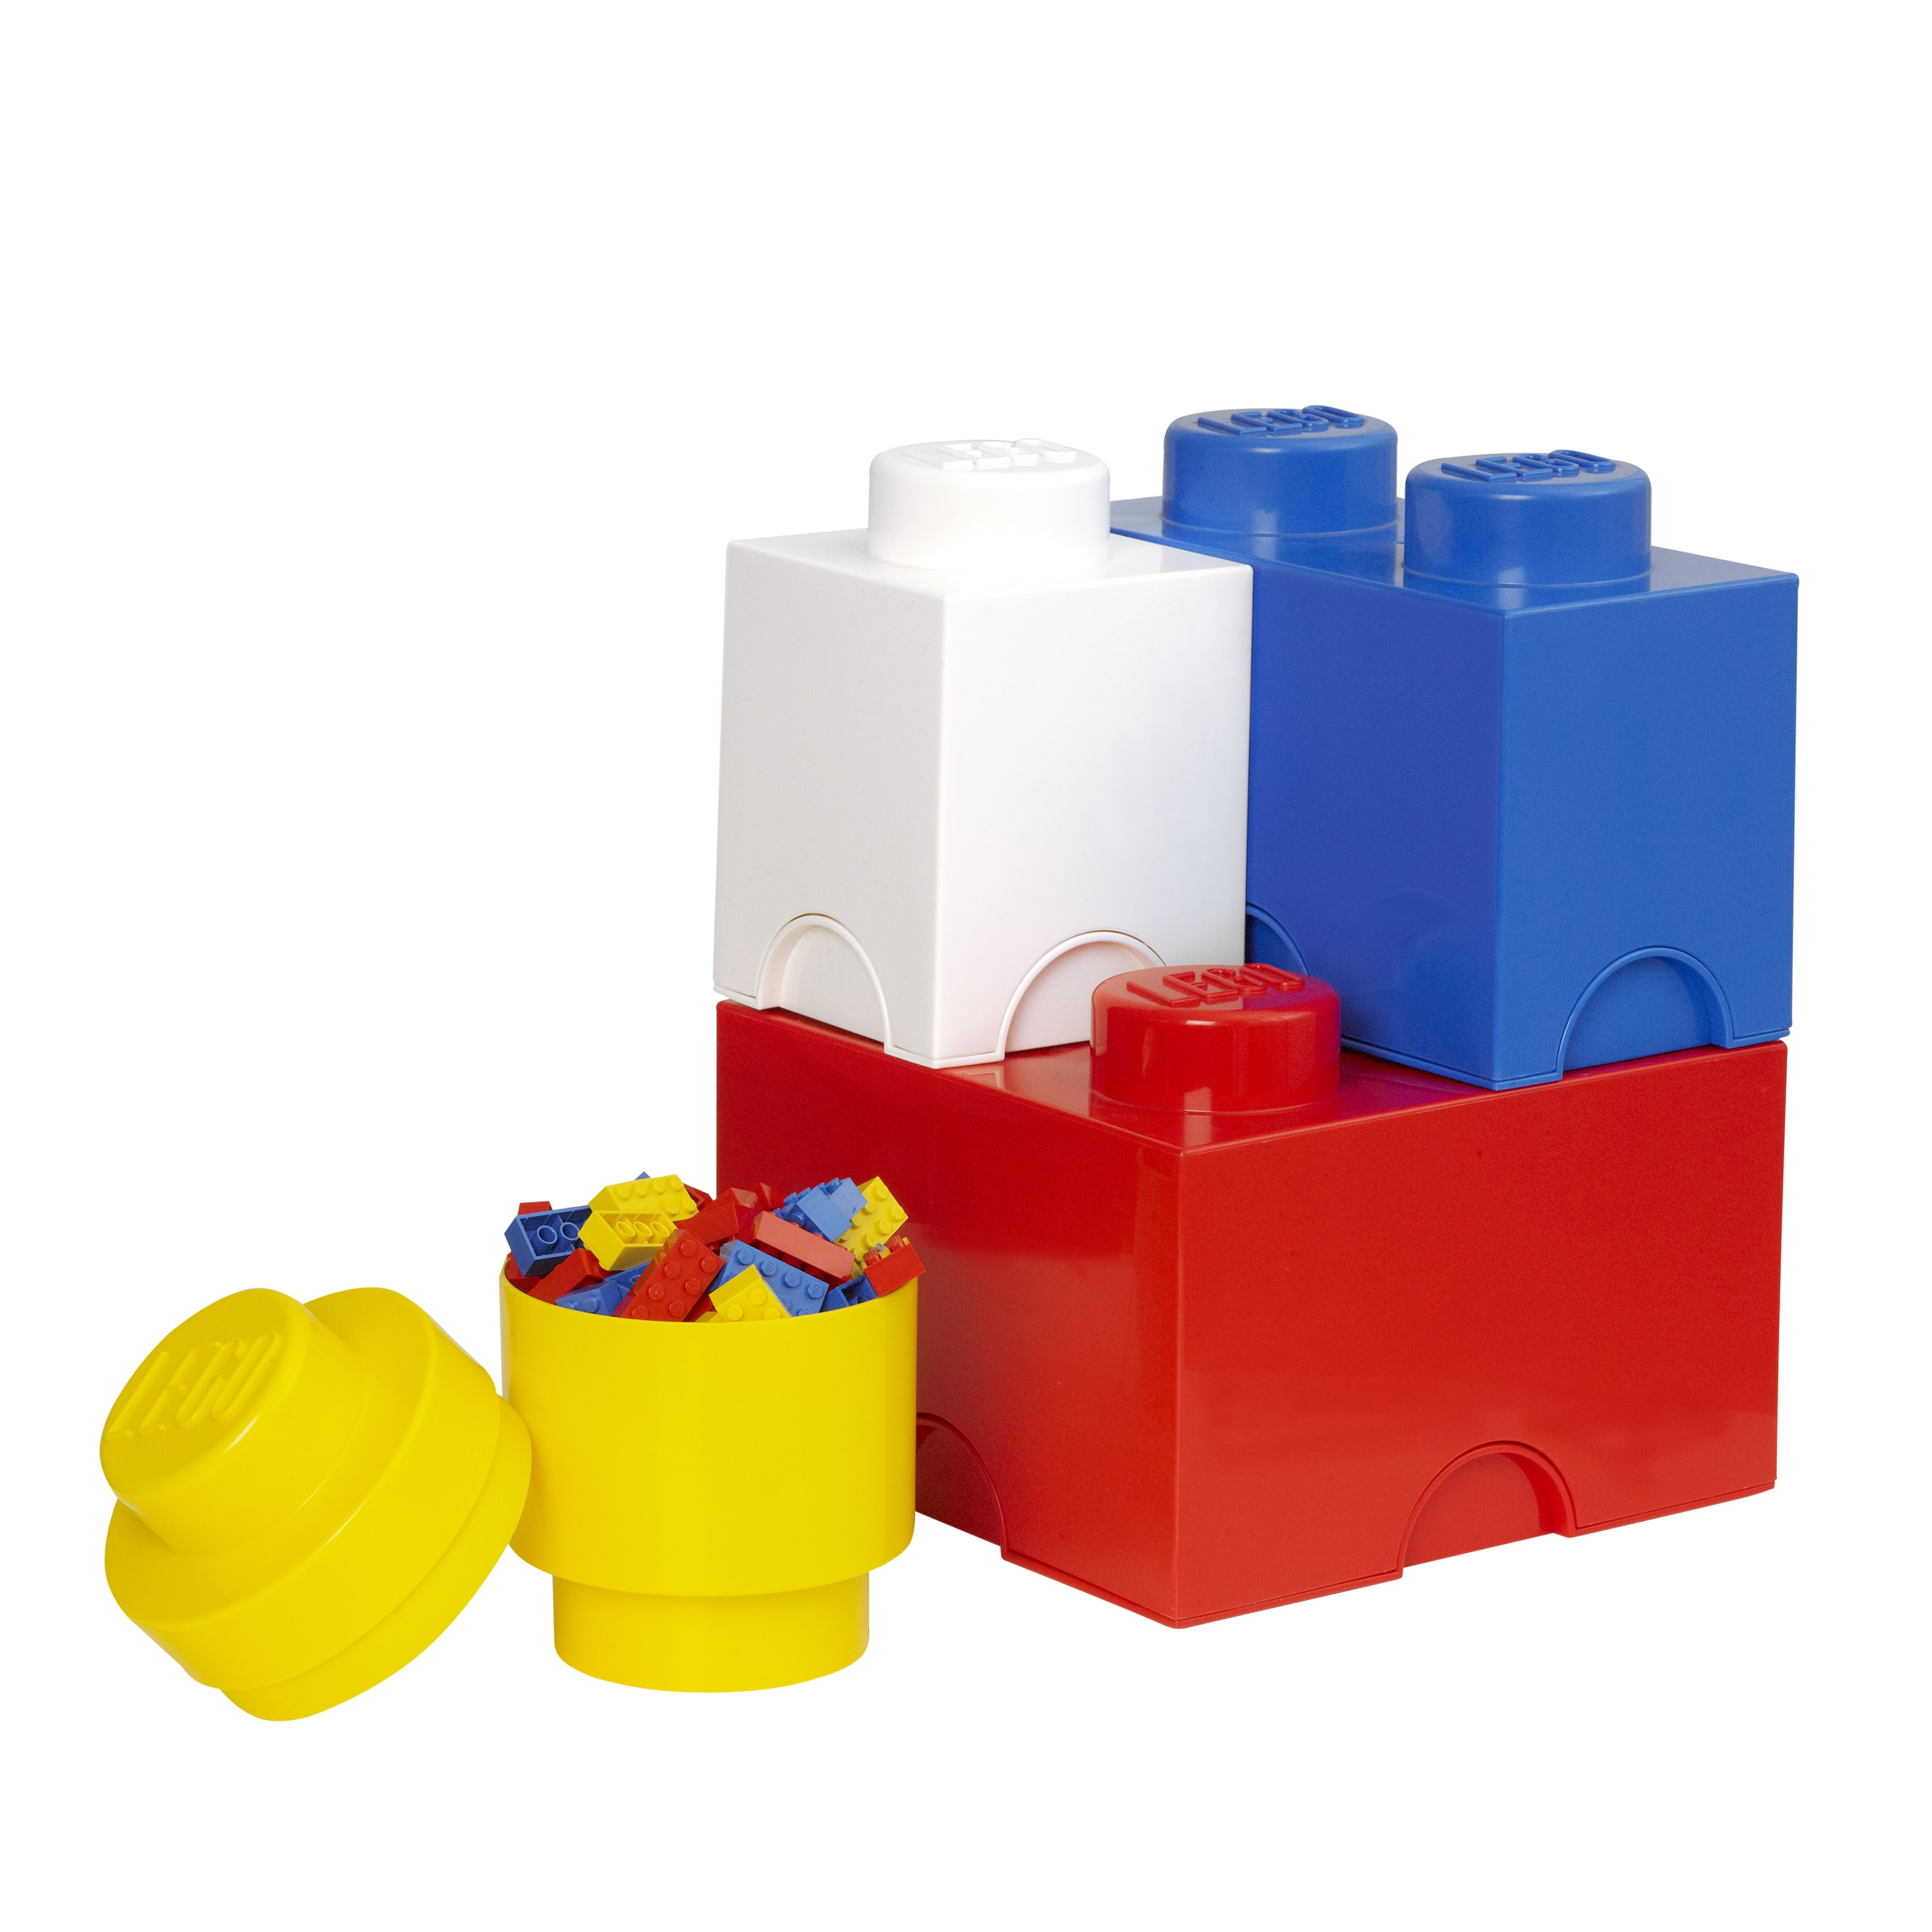 Genial Shop LEGO Storage Brick 4 Piece Multi Pack (Bright Red/ Bright Blue/ Bright  Yellow/ White)   Free Shipping Today   Overstock.com   10759047